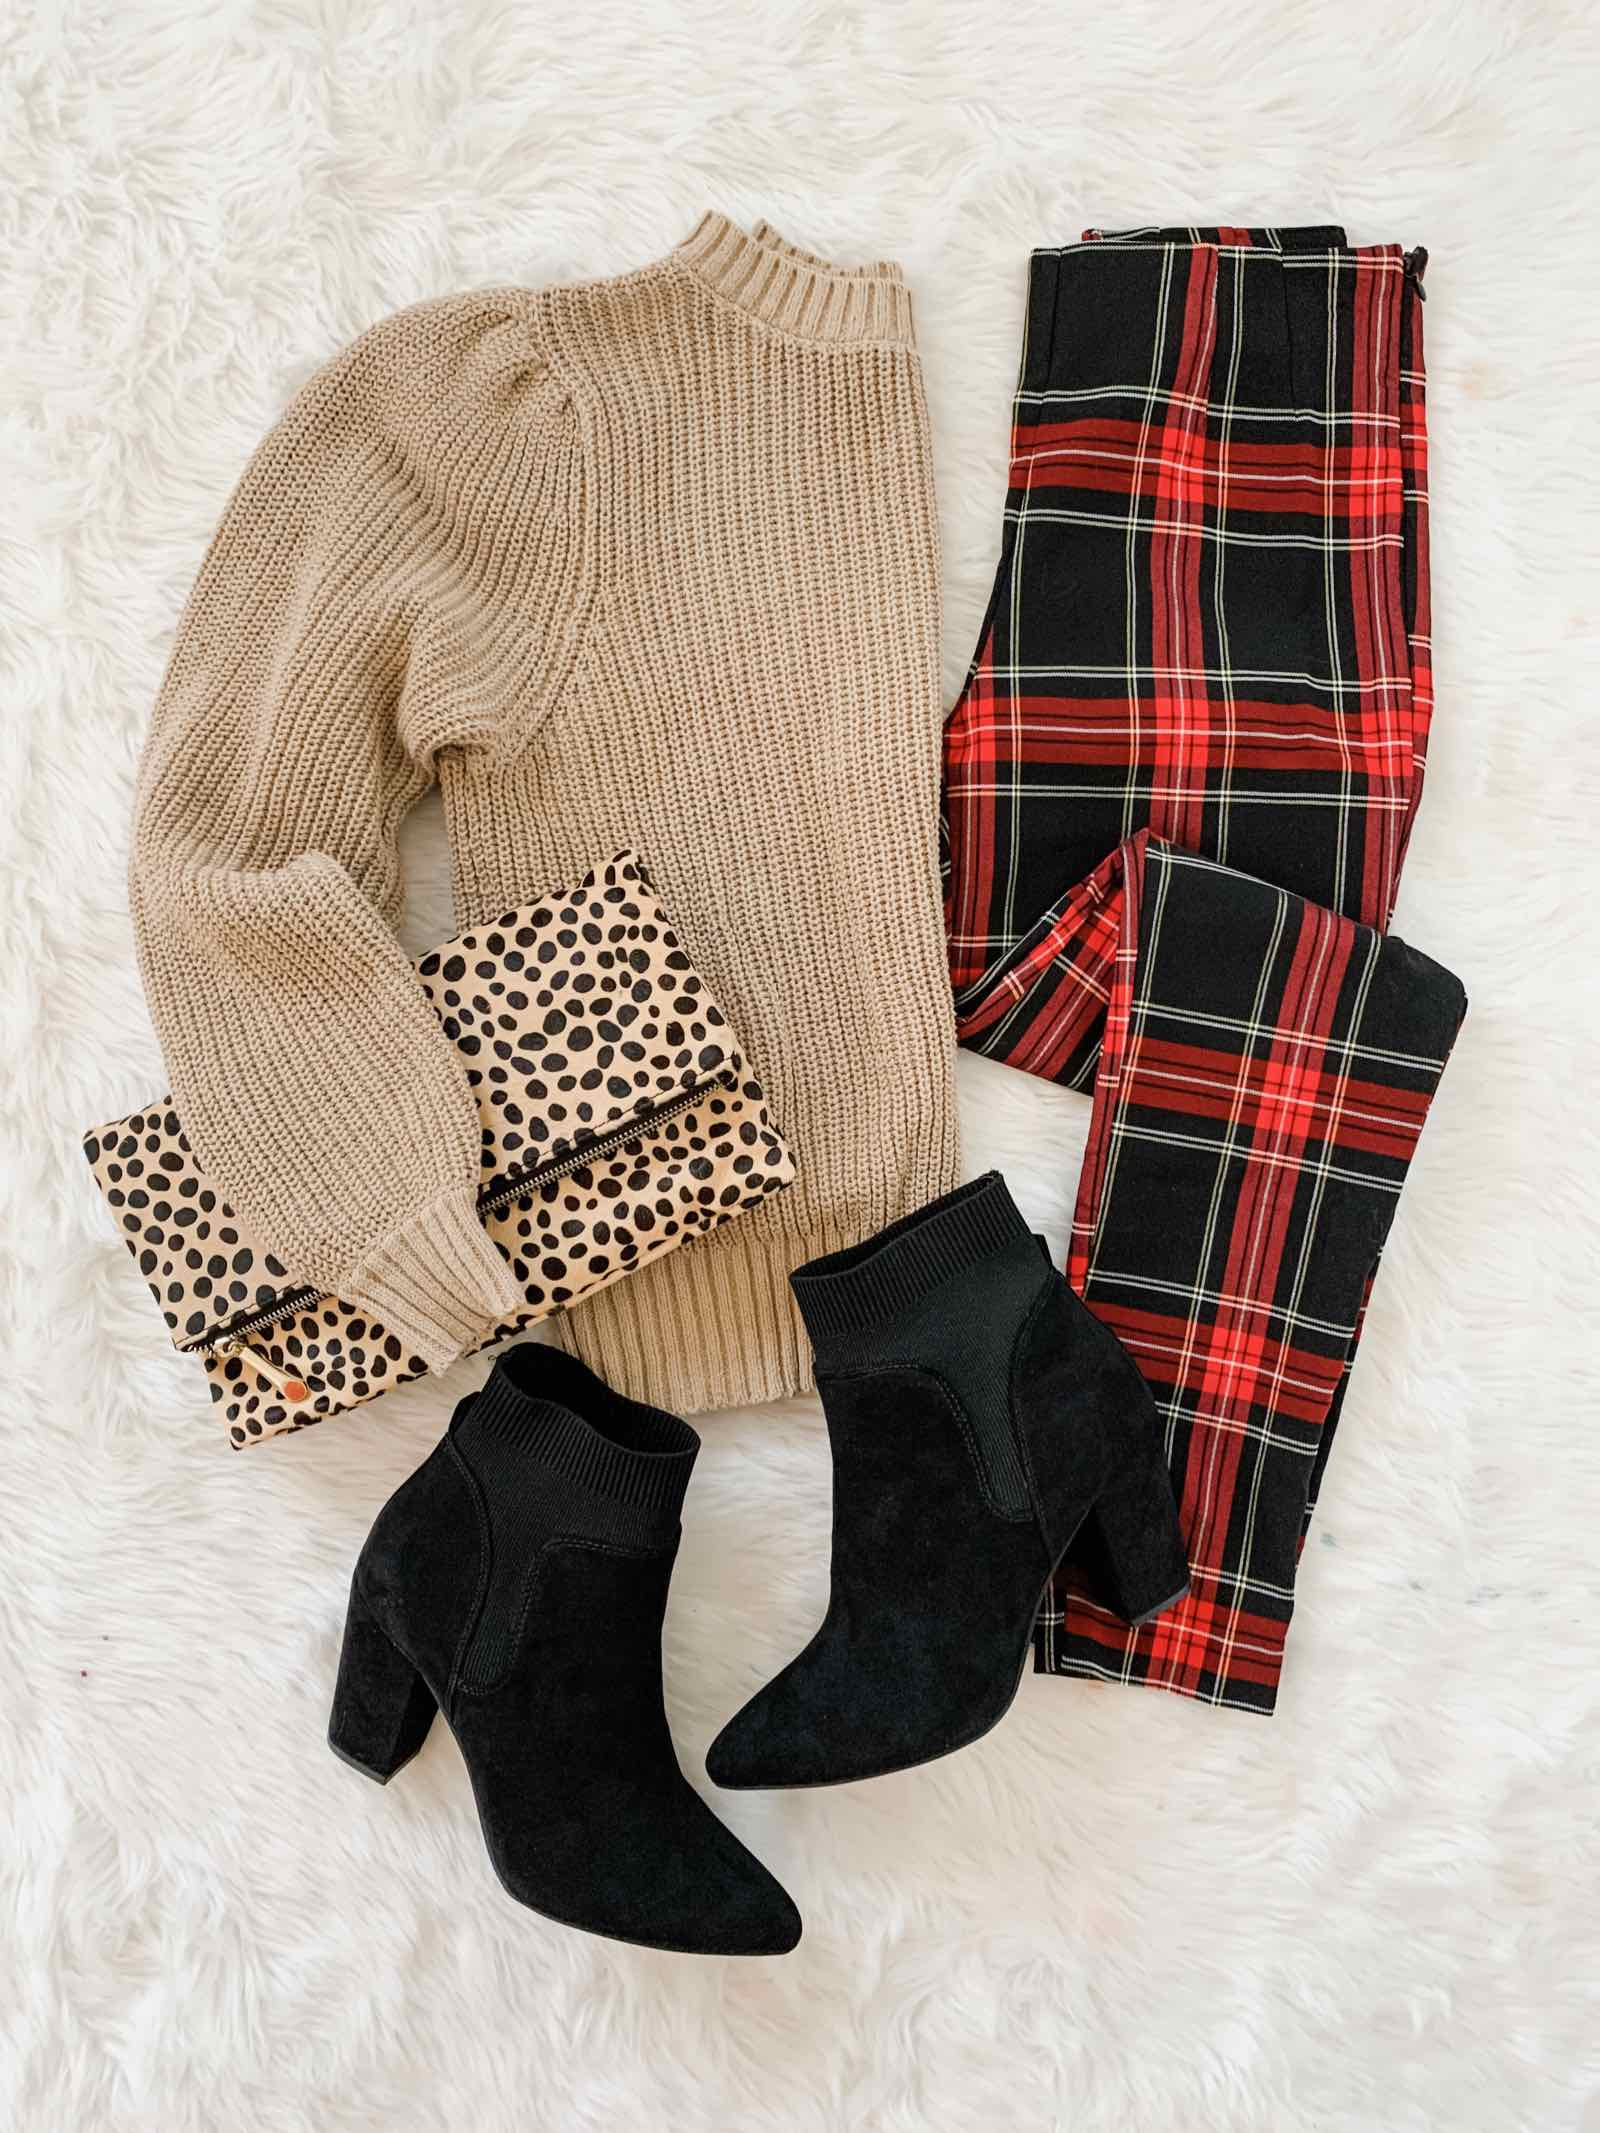 Plaid pants and ankle boots for the holidays!